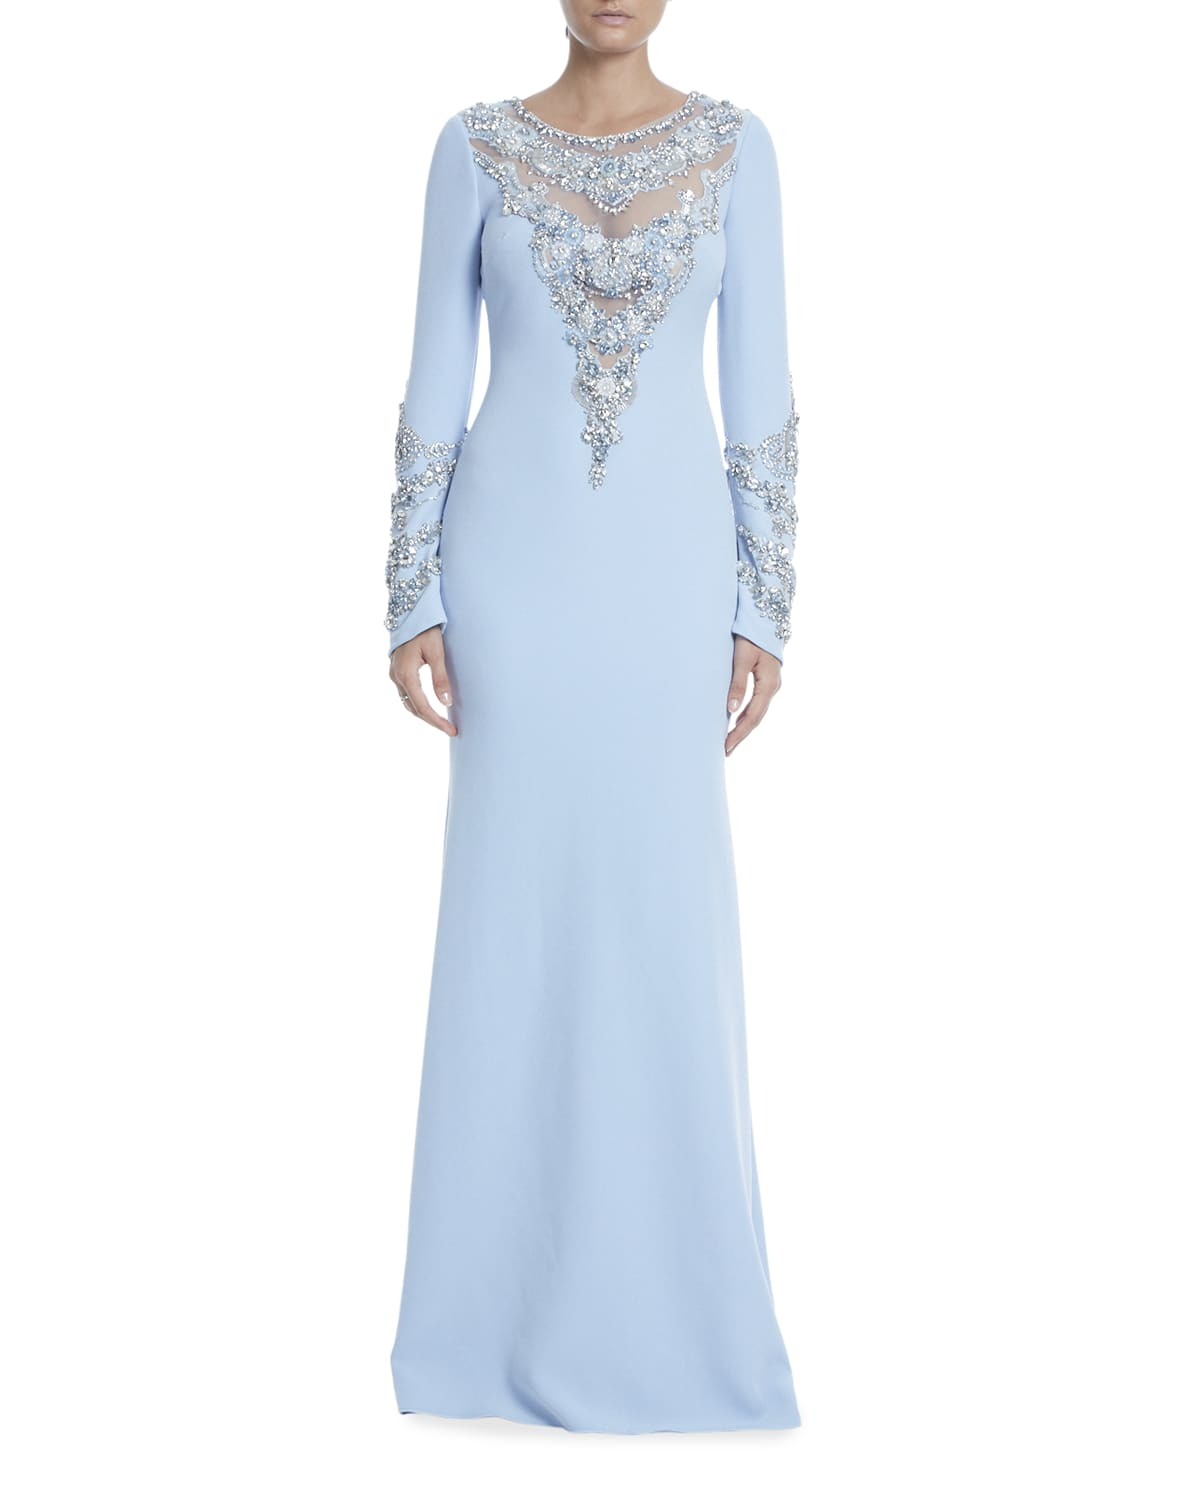 Long-Sleeve Beaded Illusion Gown